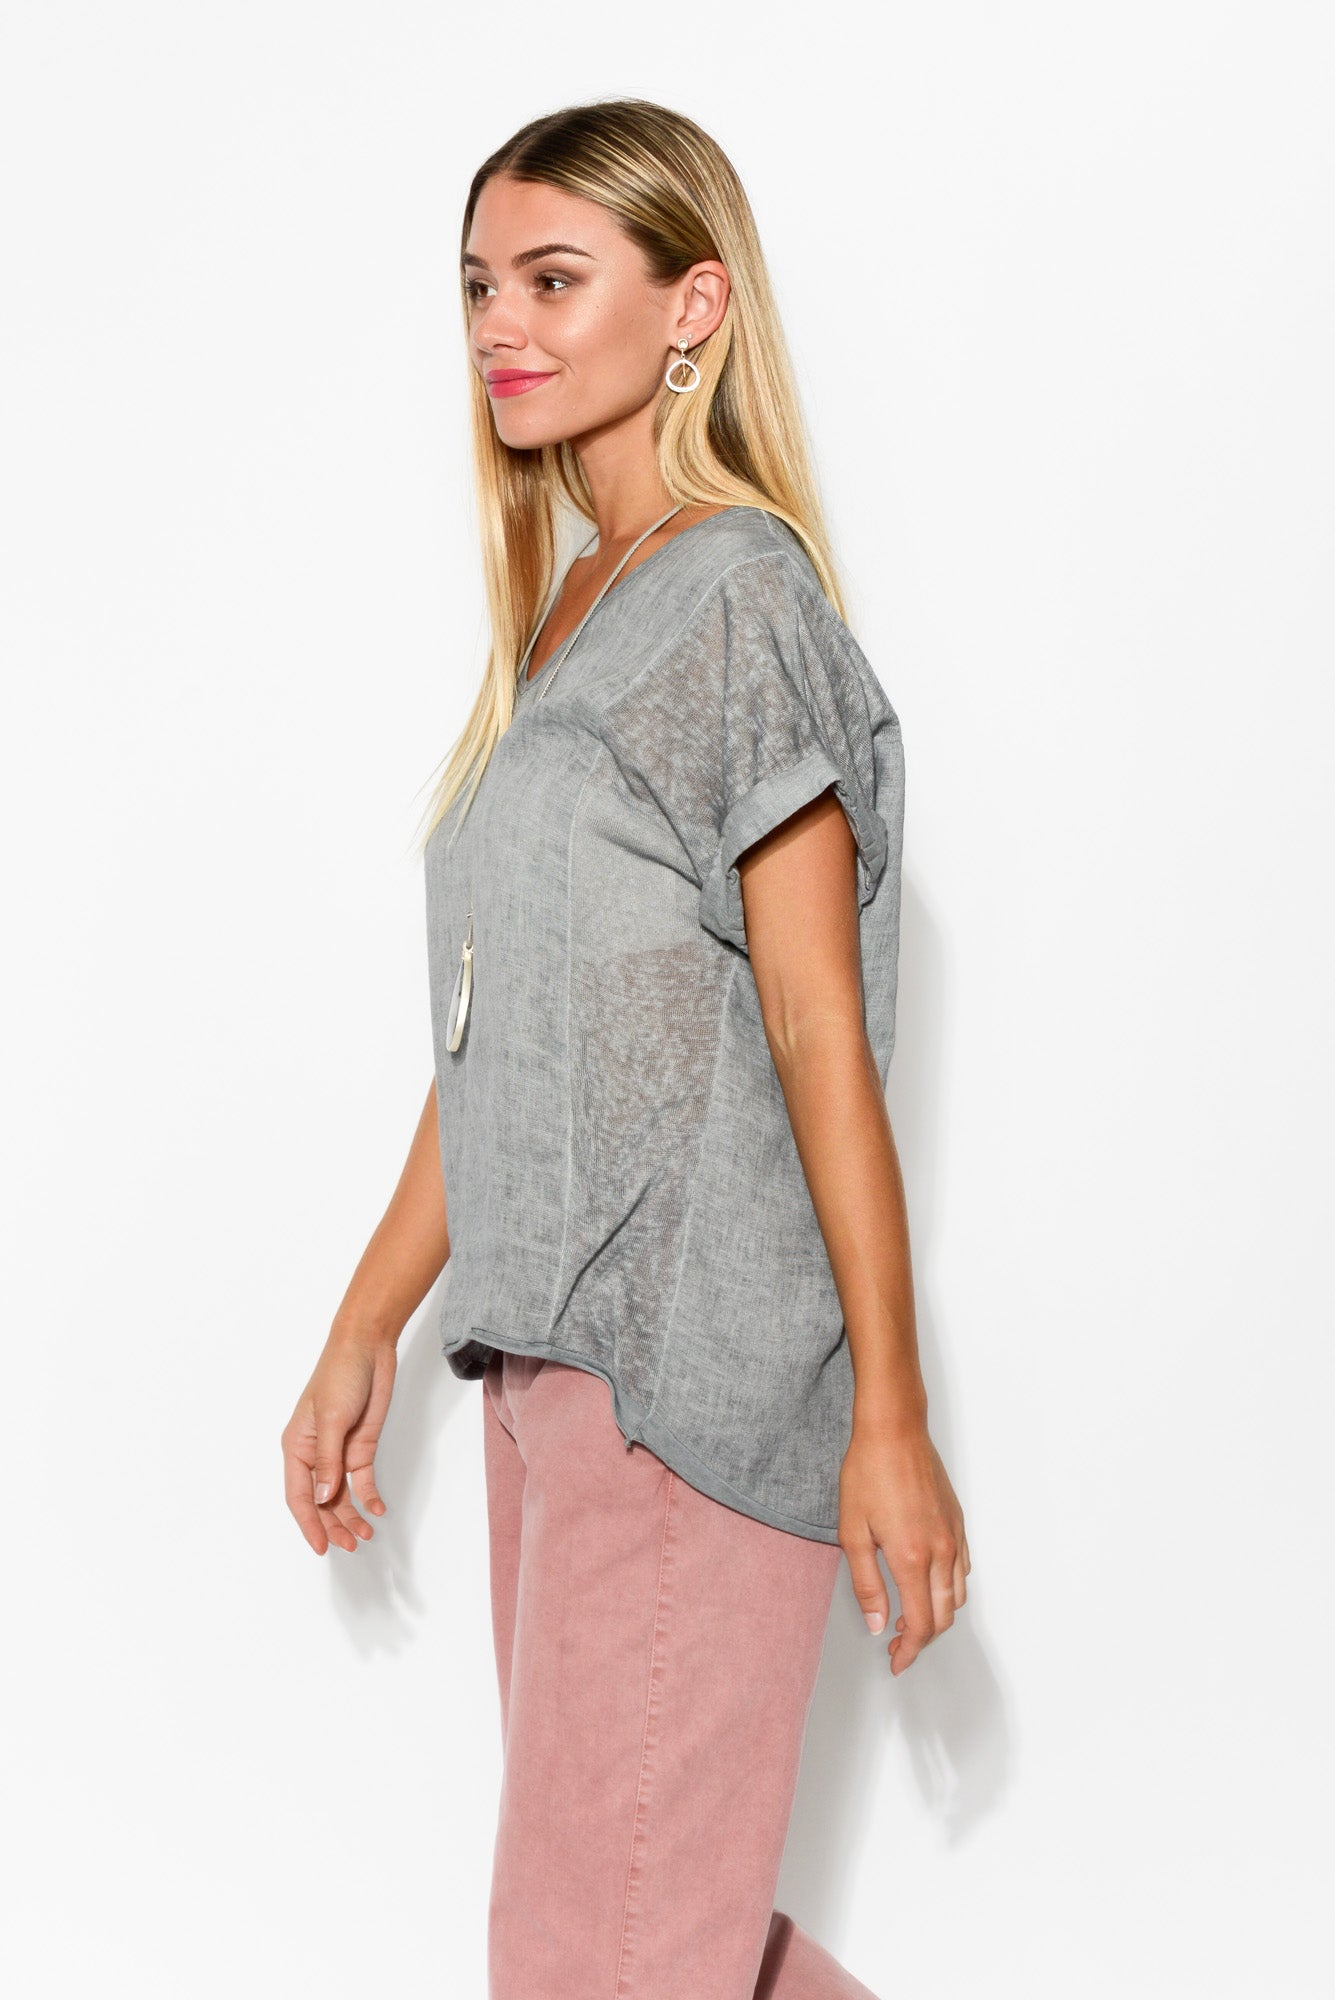 Aria Grey Linen Cotton Top - Blue Bungalow